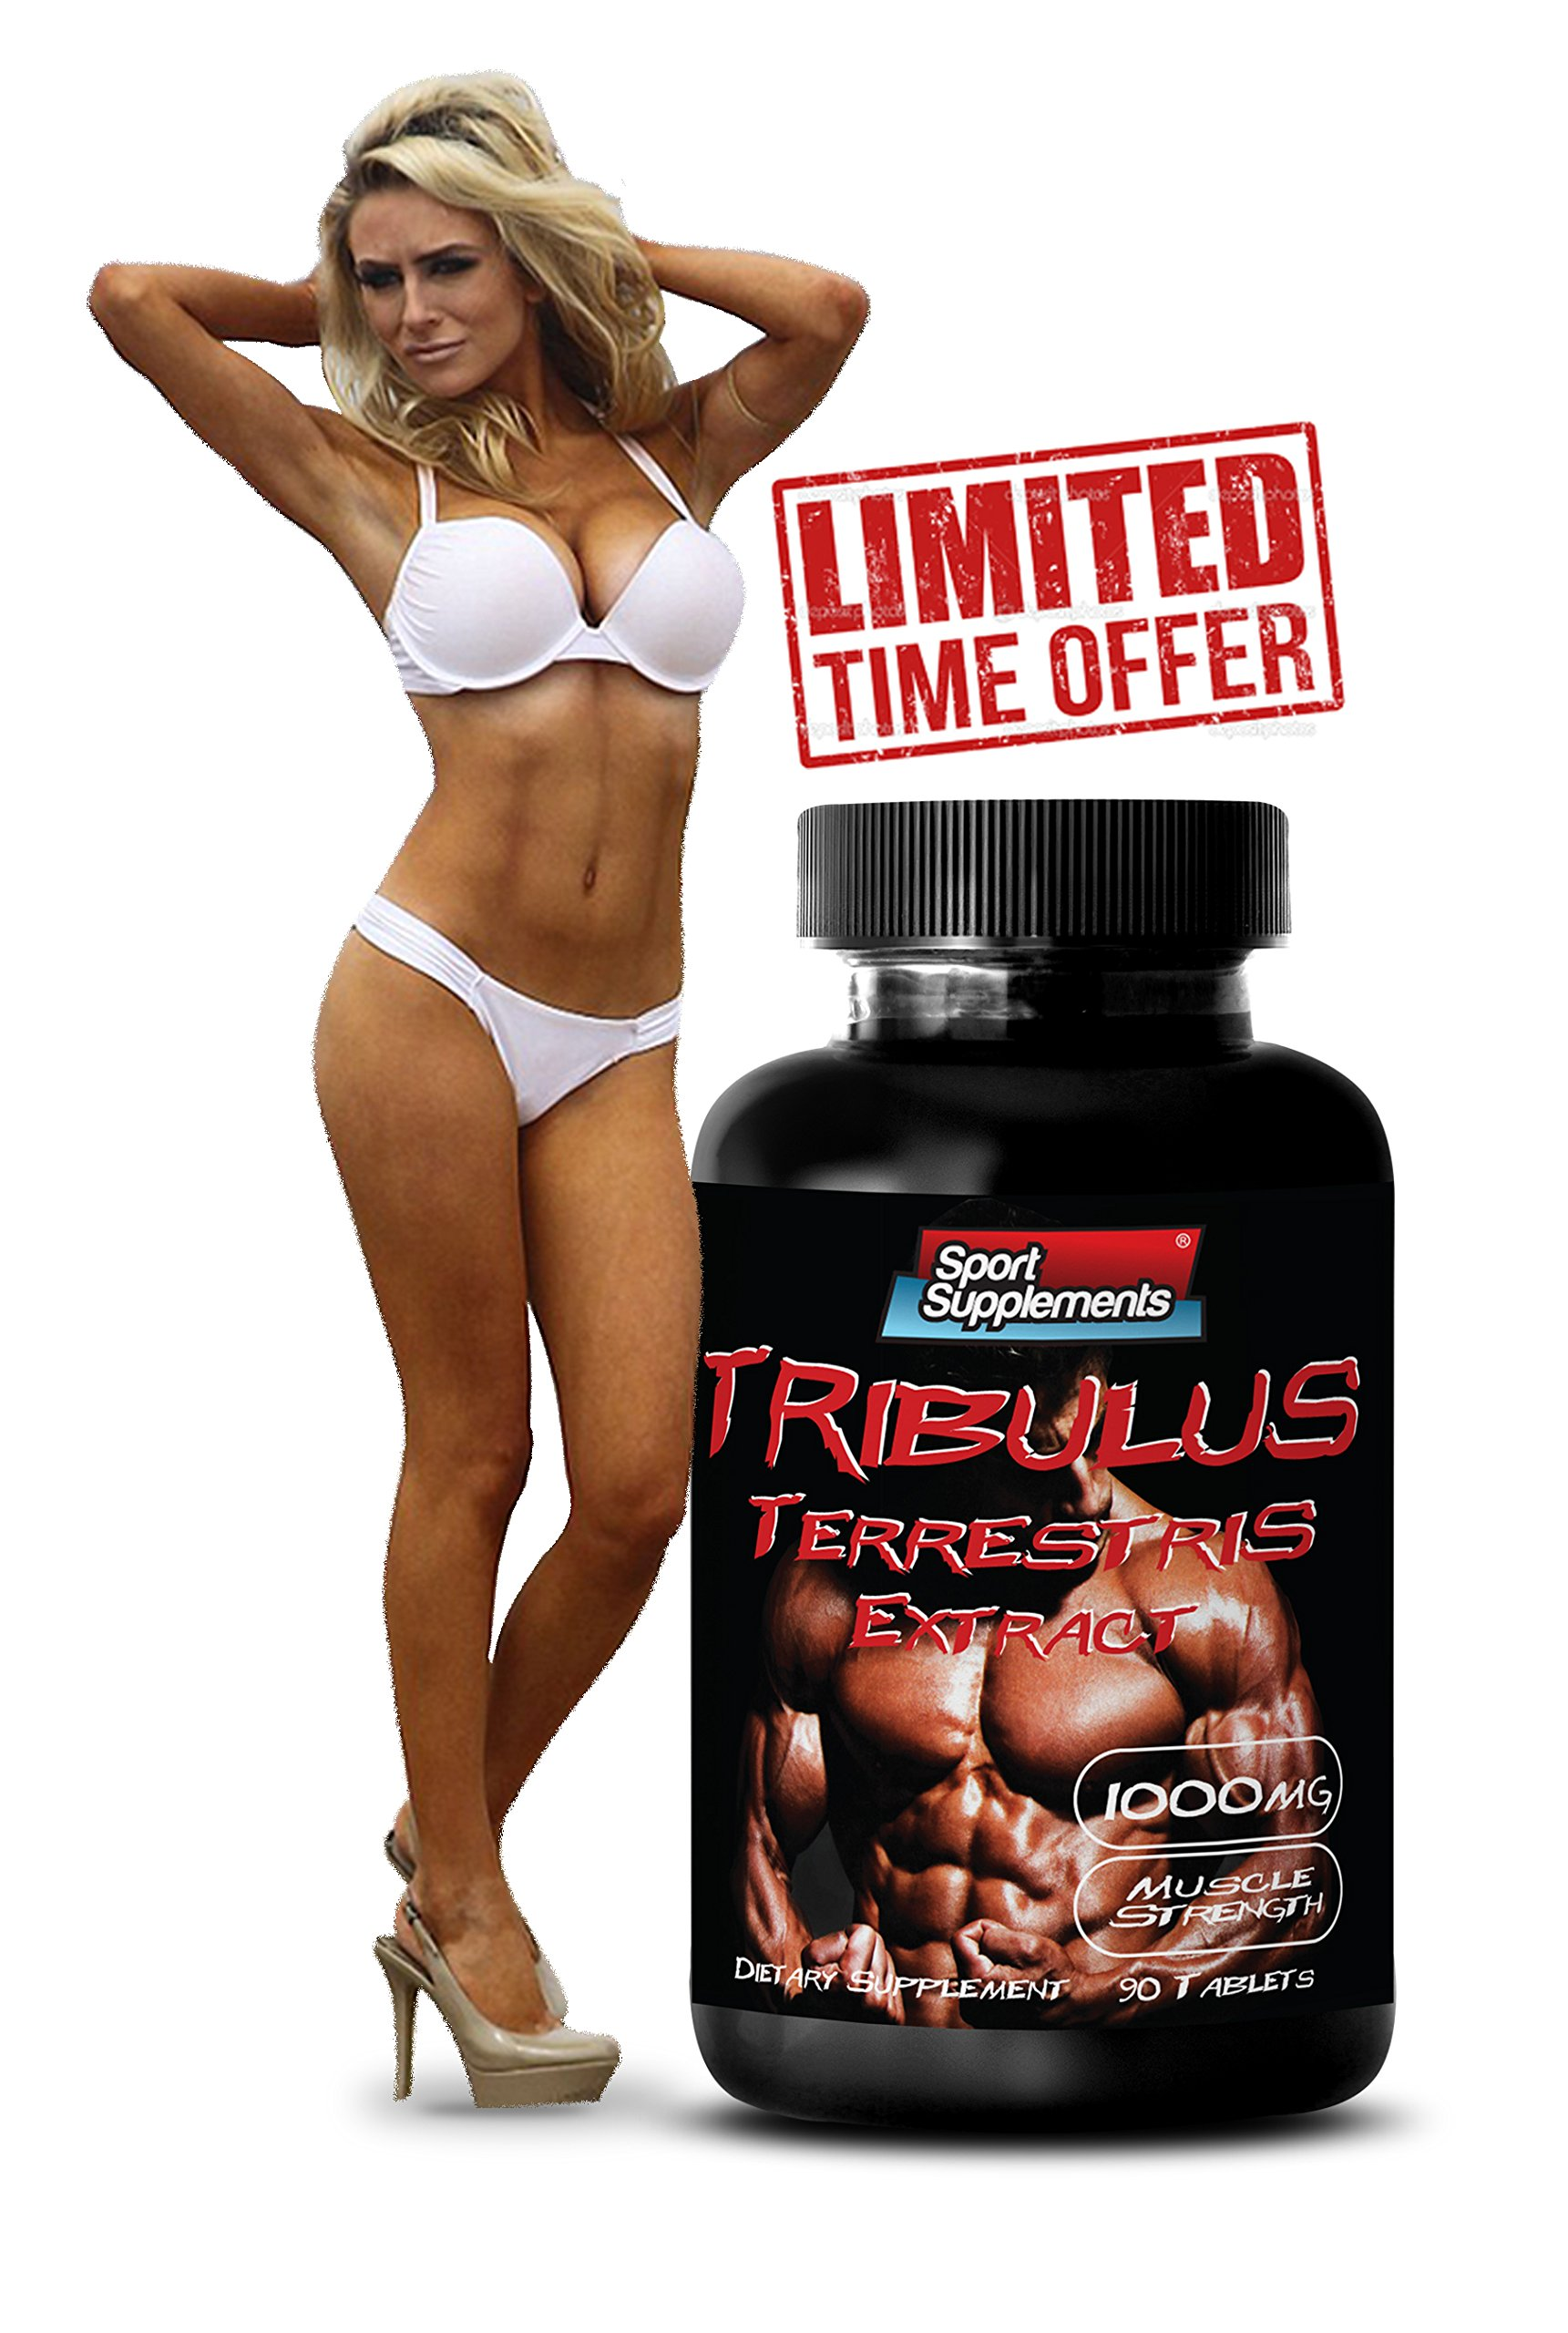 Sexual desire enhancer - TRIBULUS TERRESTRIS EXTRACT 1000mg (with Standardized 400mg Natural Saponins) - Tribulus protodioscin - 1 Bottle 90 Tablets